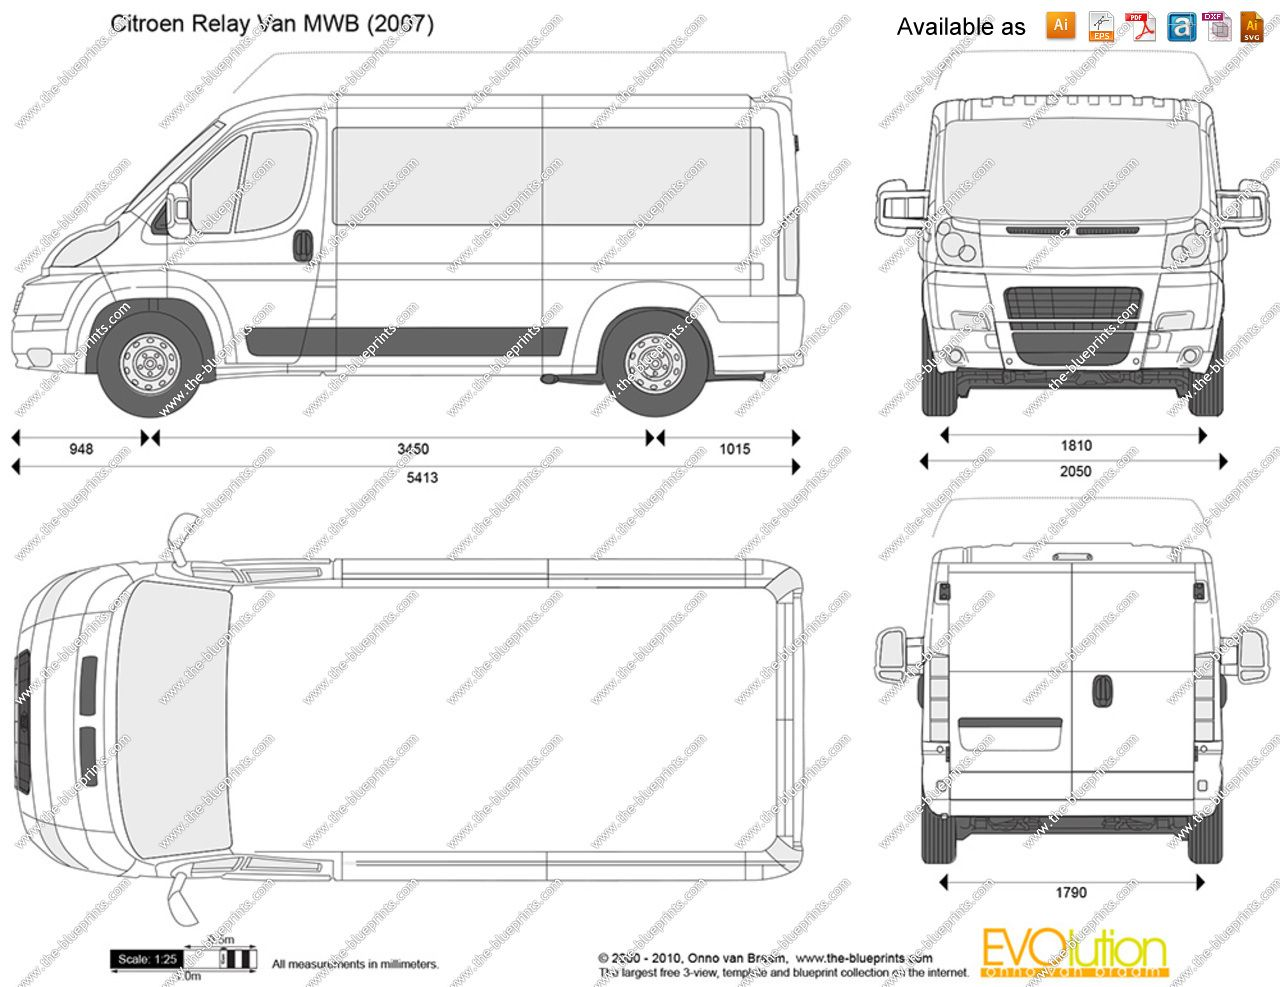 Image Result For Citroen Relay Dimensions Mwb